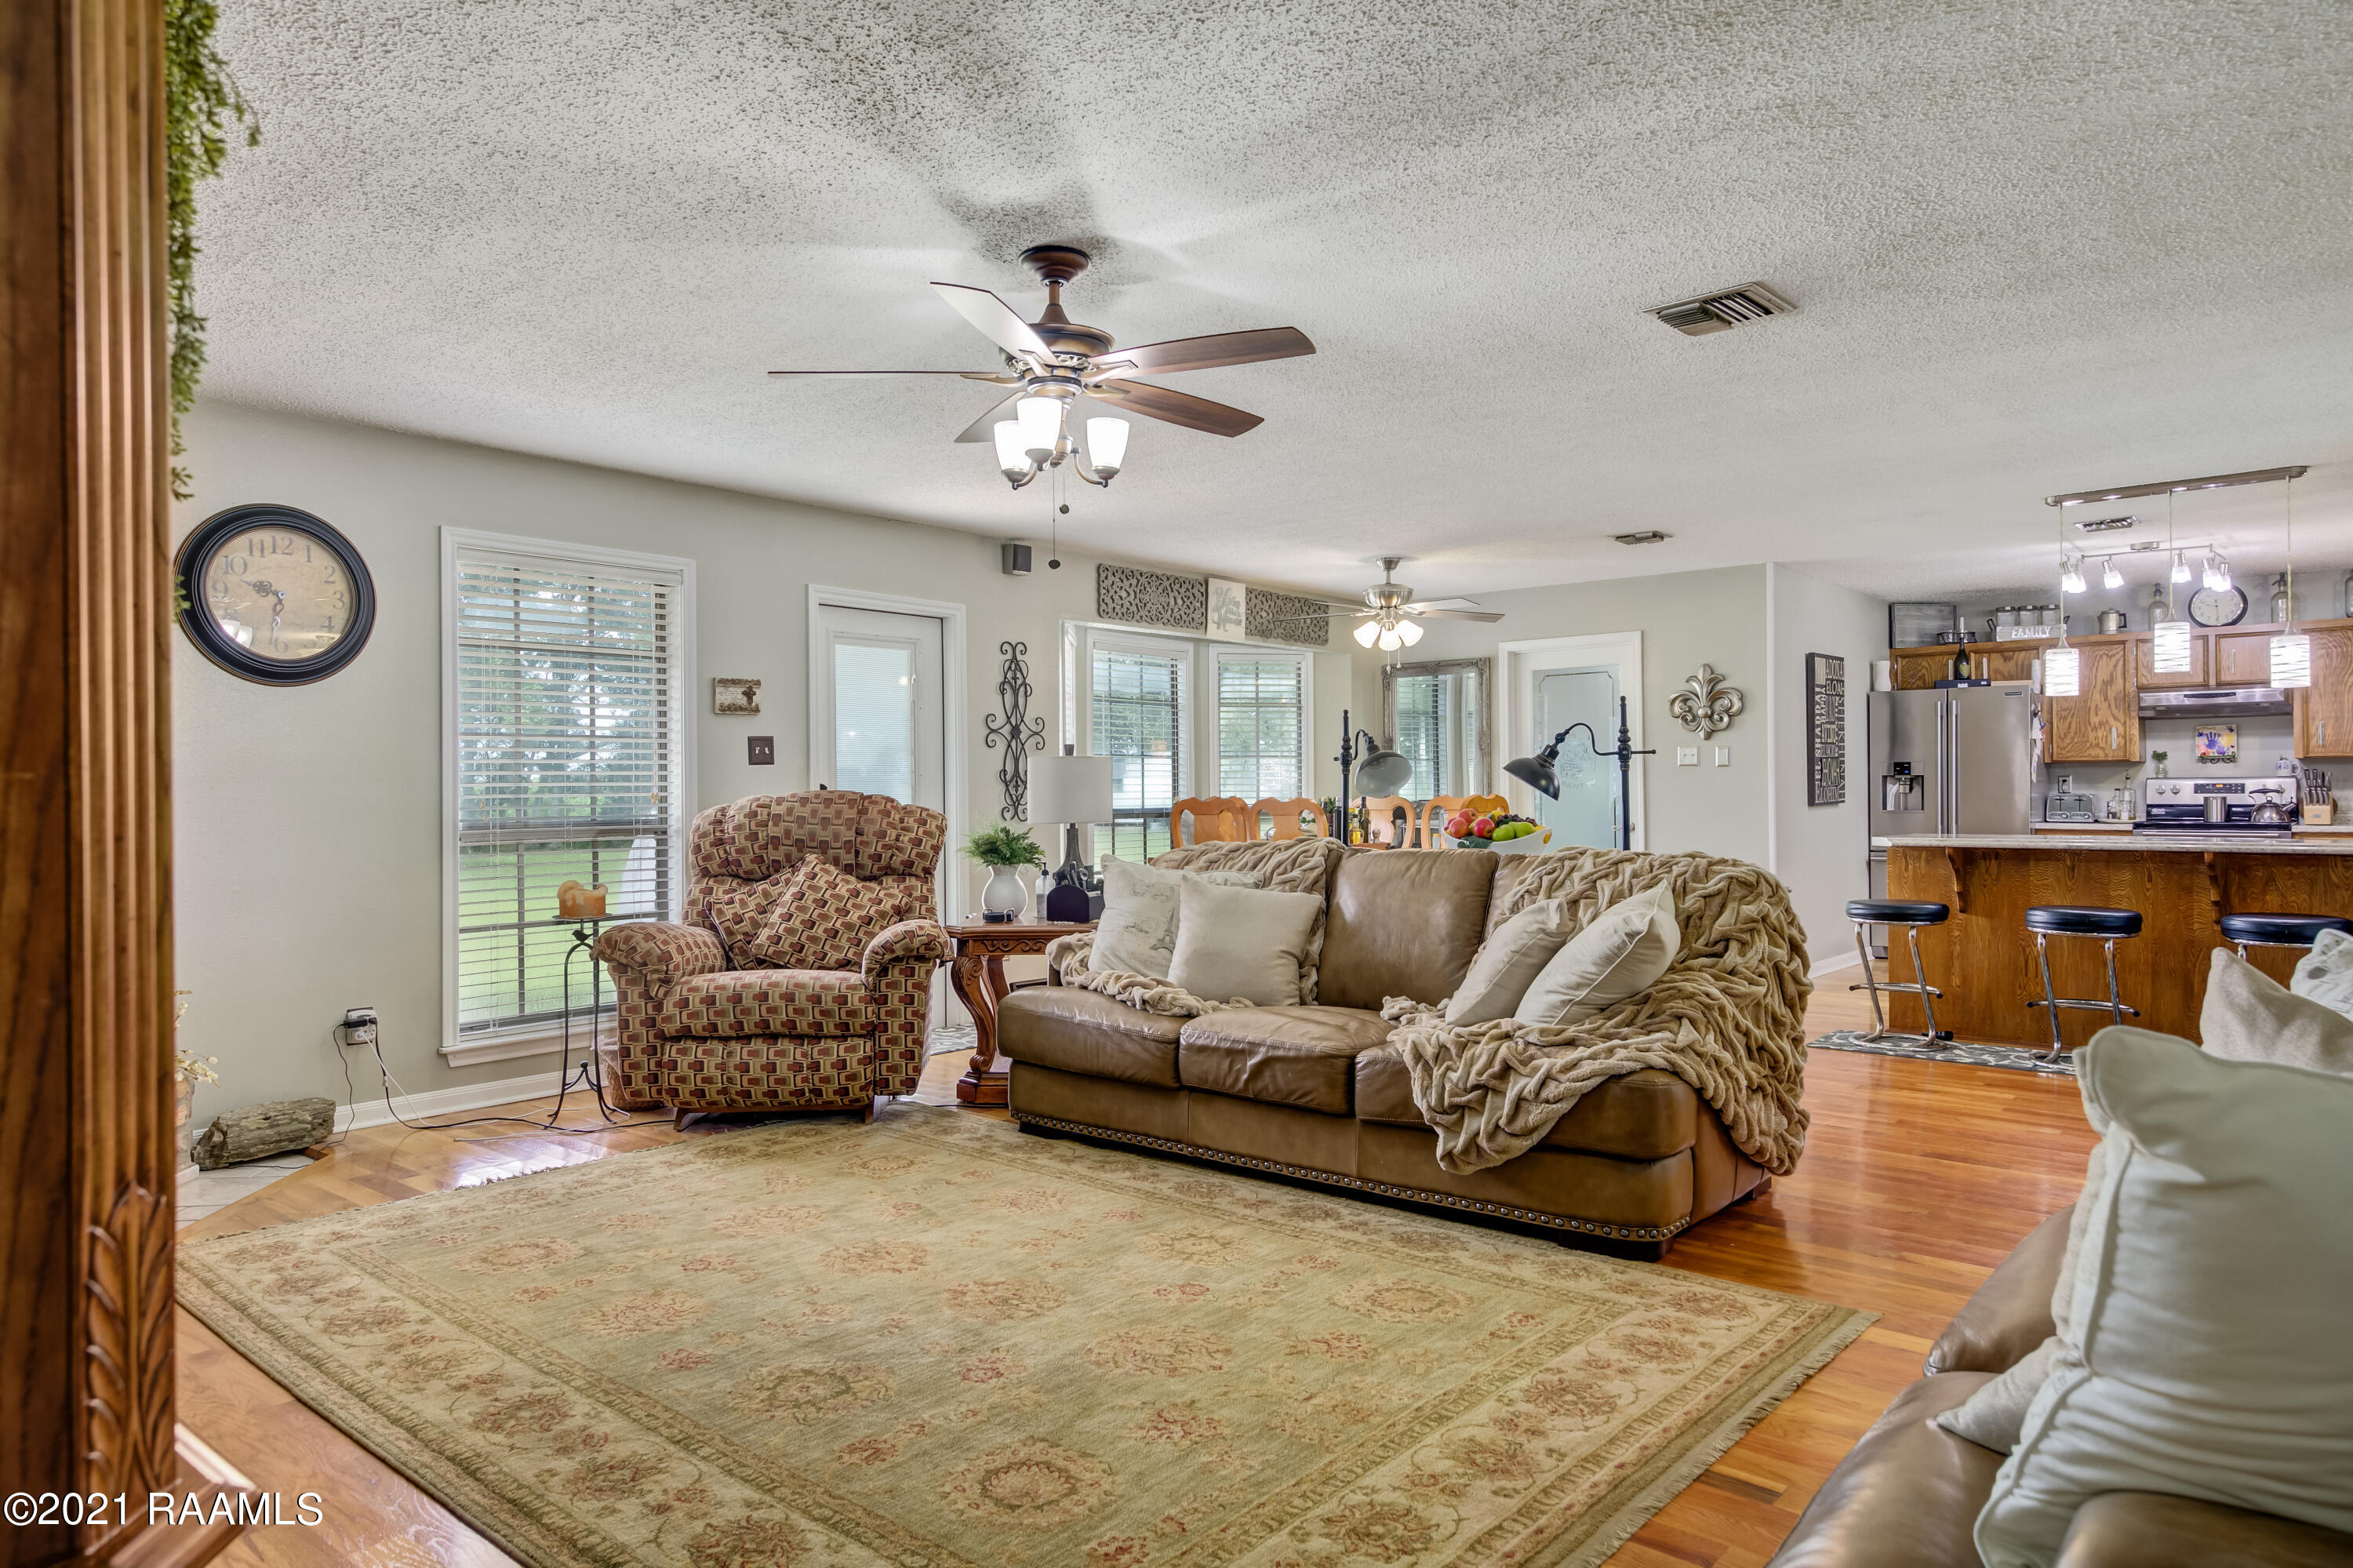 225 Countryview Drive, Youngsville, LA 70592 Photo #5